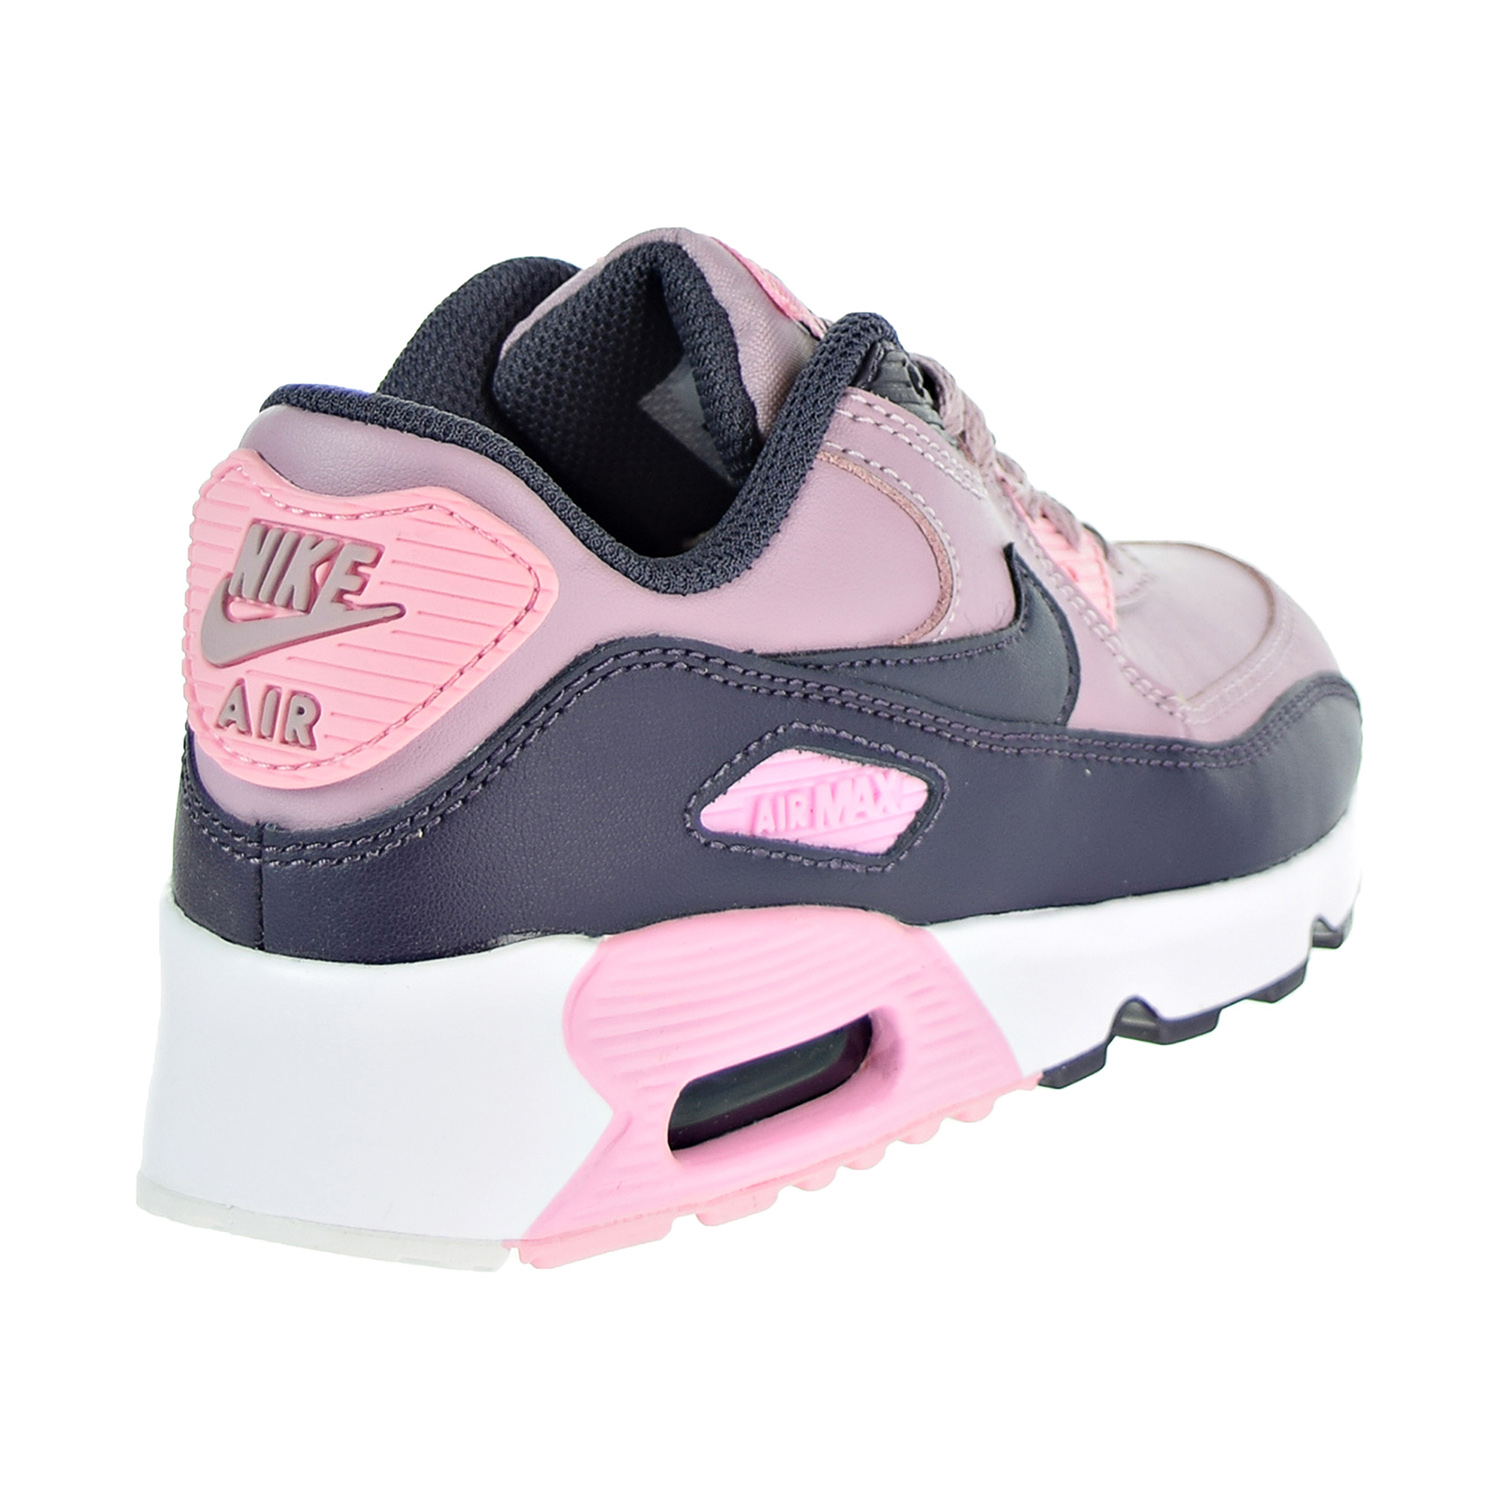 super popular fdd01 1985e Nike Air Max 90 LTR Big Kids Shoes Pink 833377-602